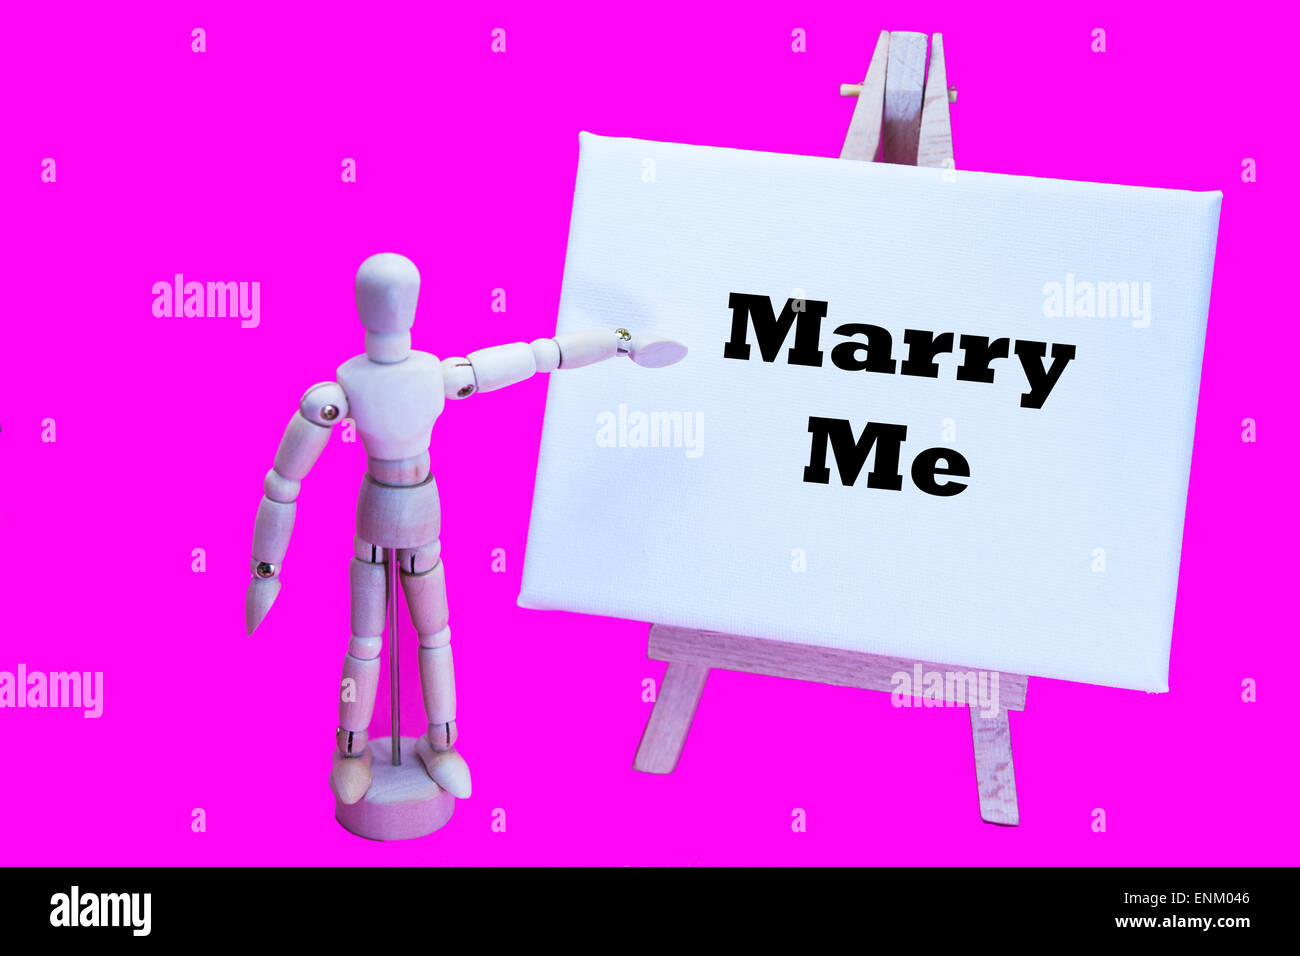 Wooden Man With White Board Pointing At Words Marry Me Proposal Proposing Declaration Of Love Marriage Asking Ask